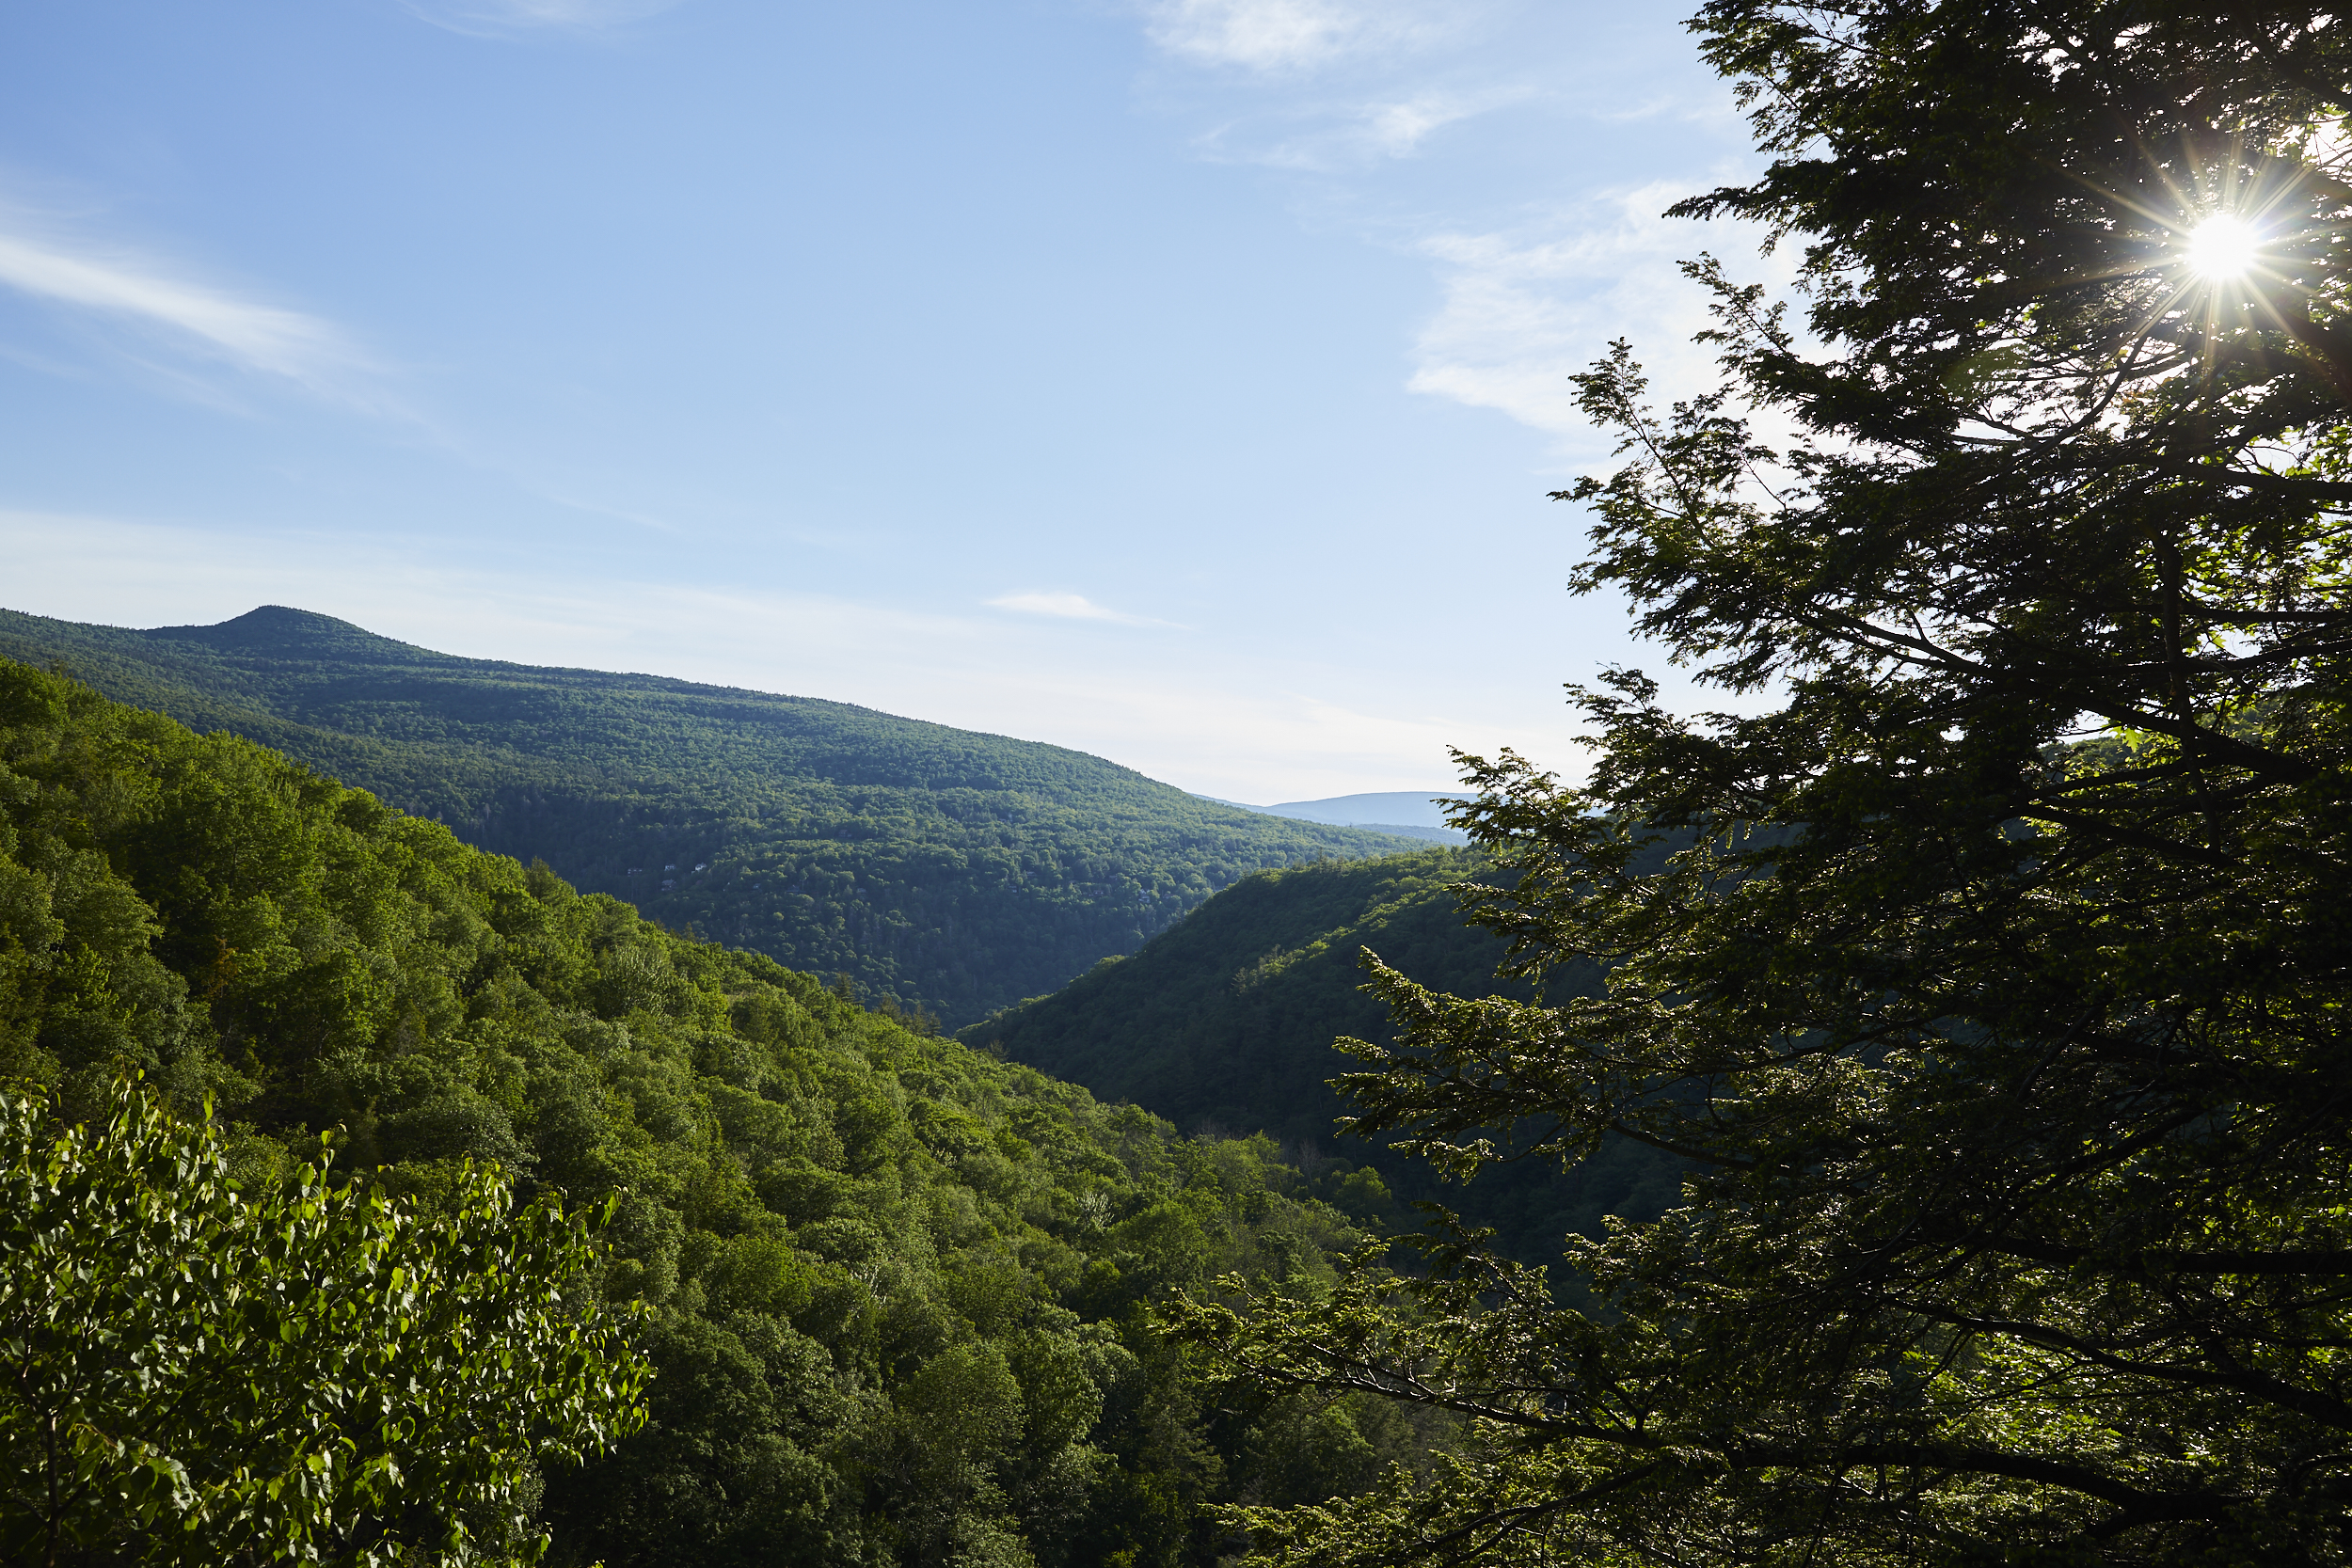 Mountains and hills covered in trees. There is a tree in the foreground. The sky is clear and blue.